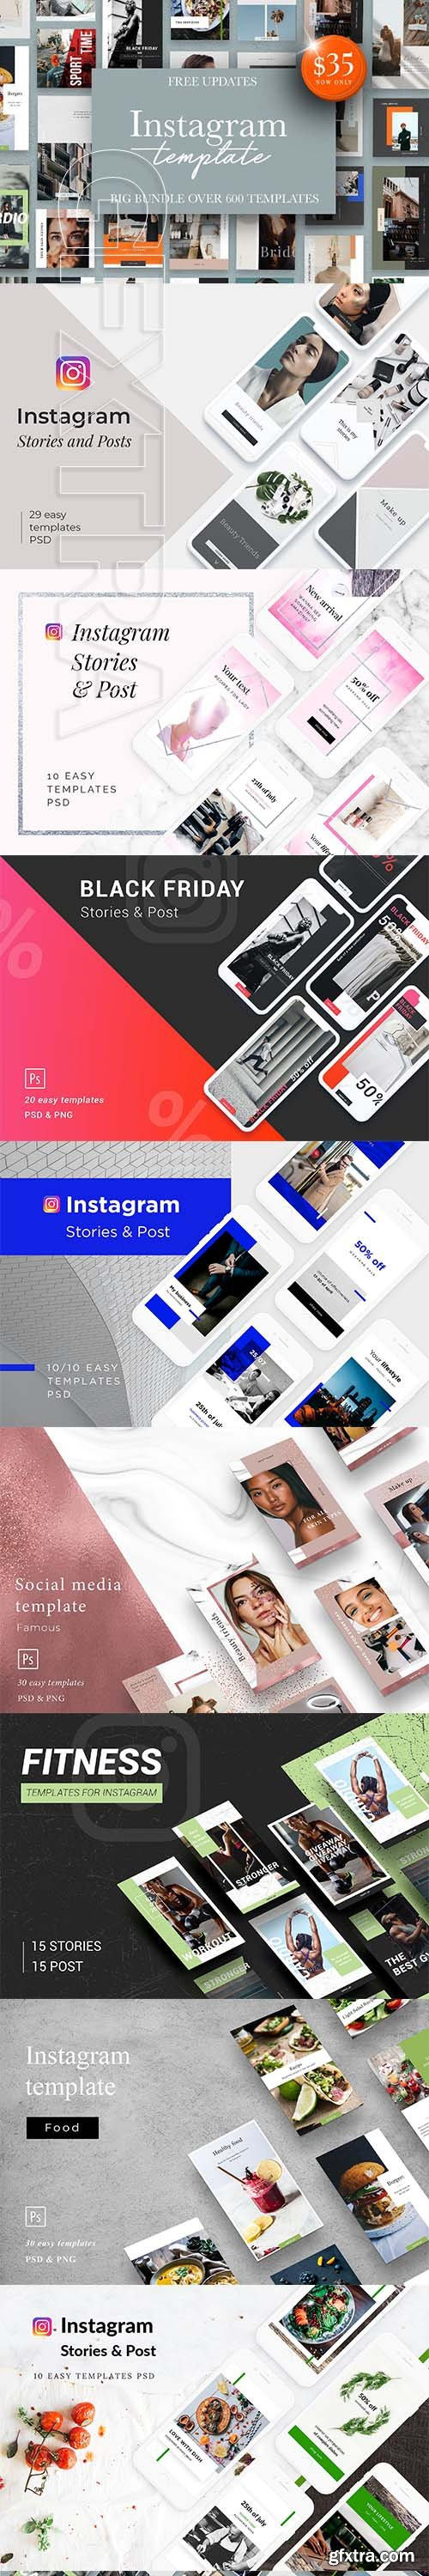 CreativeMarket - Instagram Bundle 25in1 + Free Update 3190185